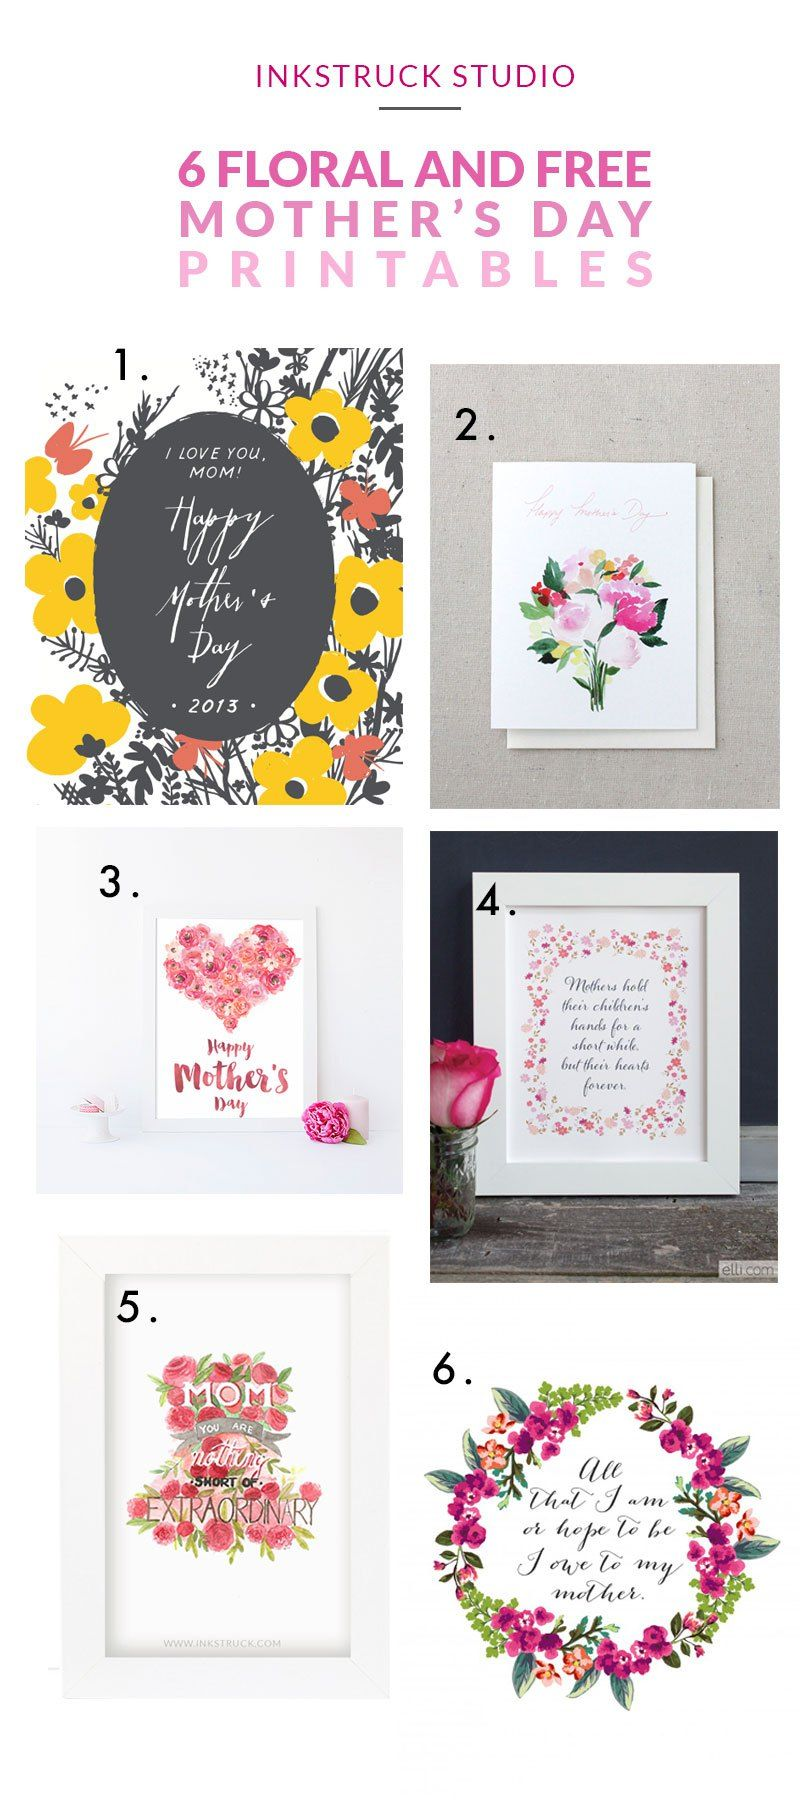 Six floral and free mother's day printables   Inkstruck Studio